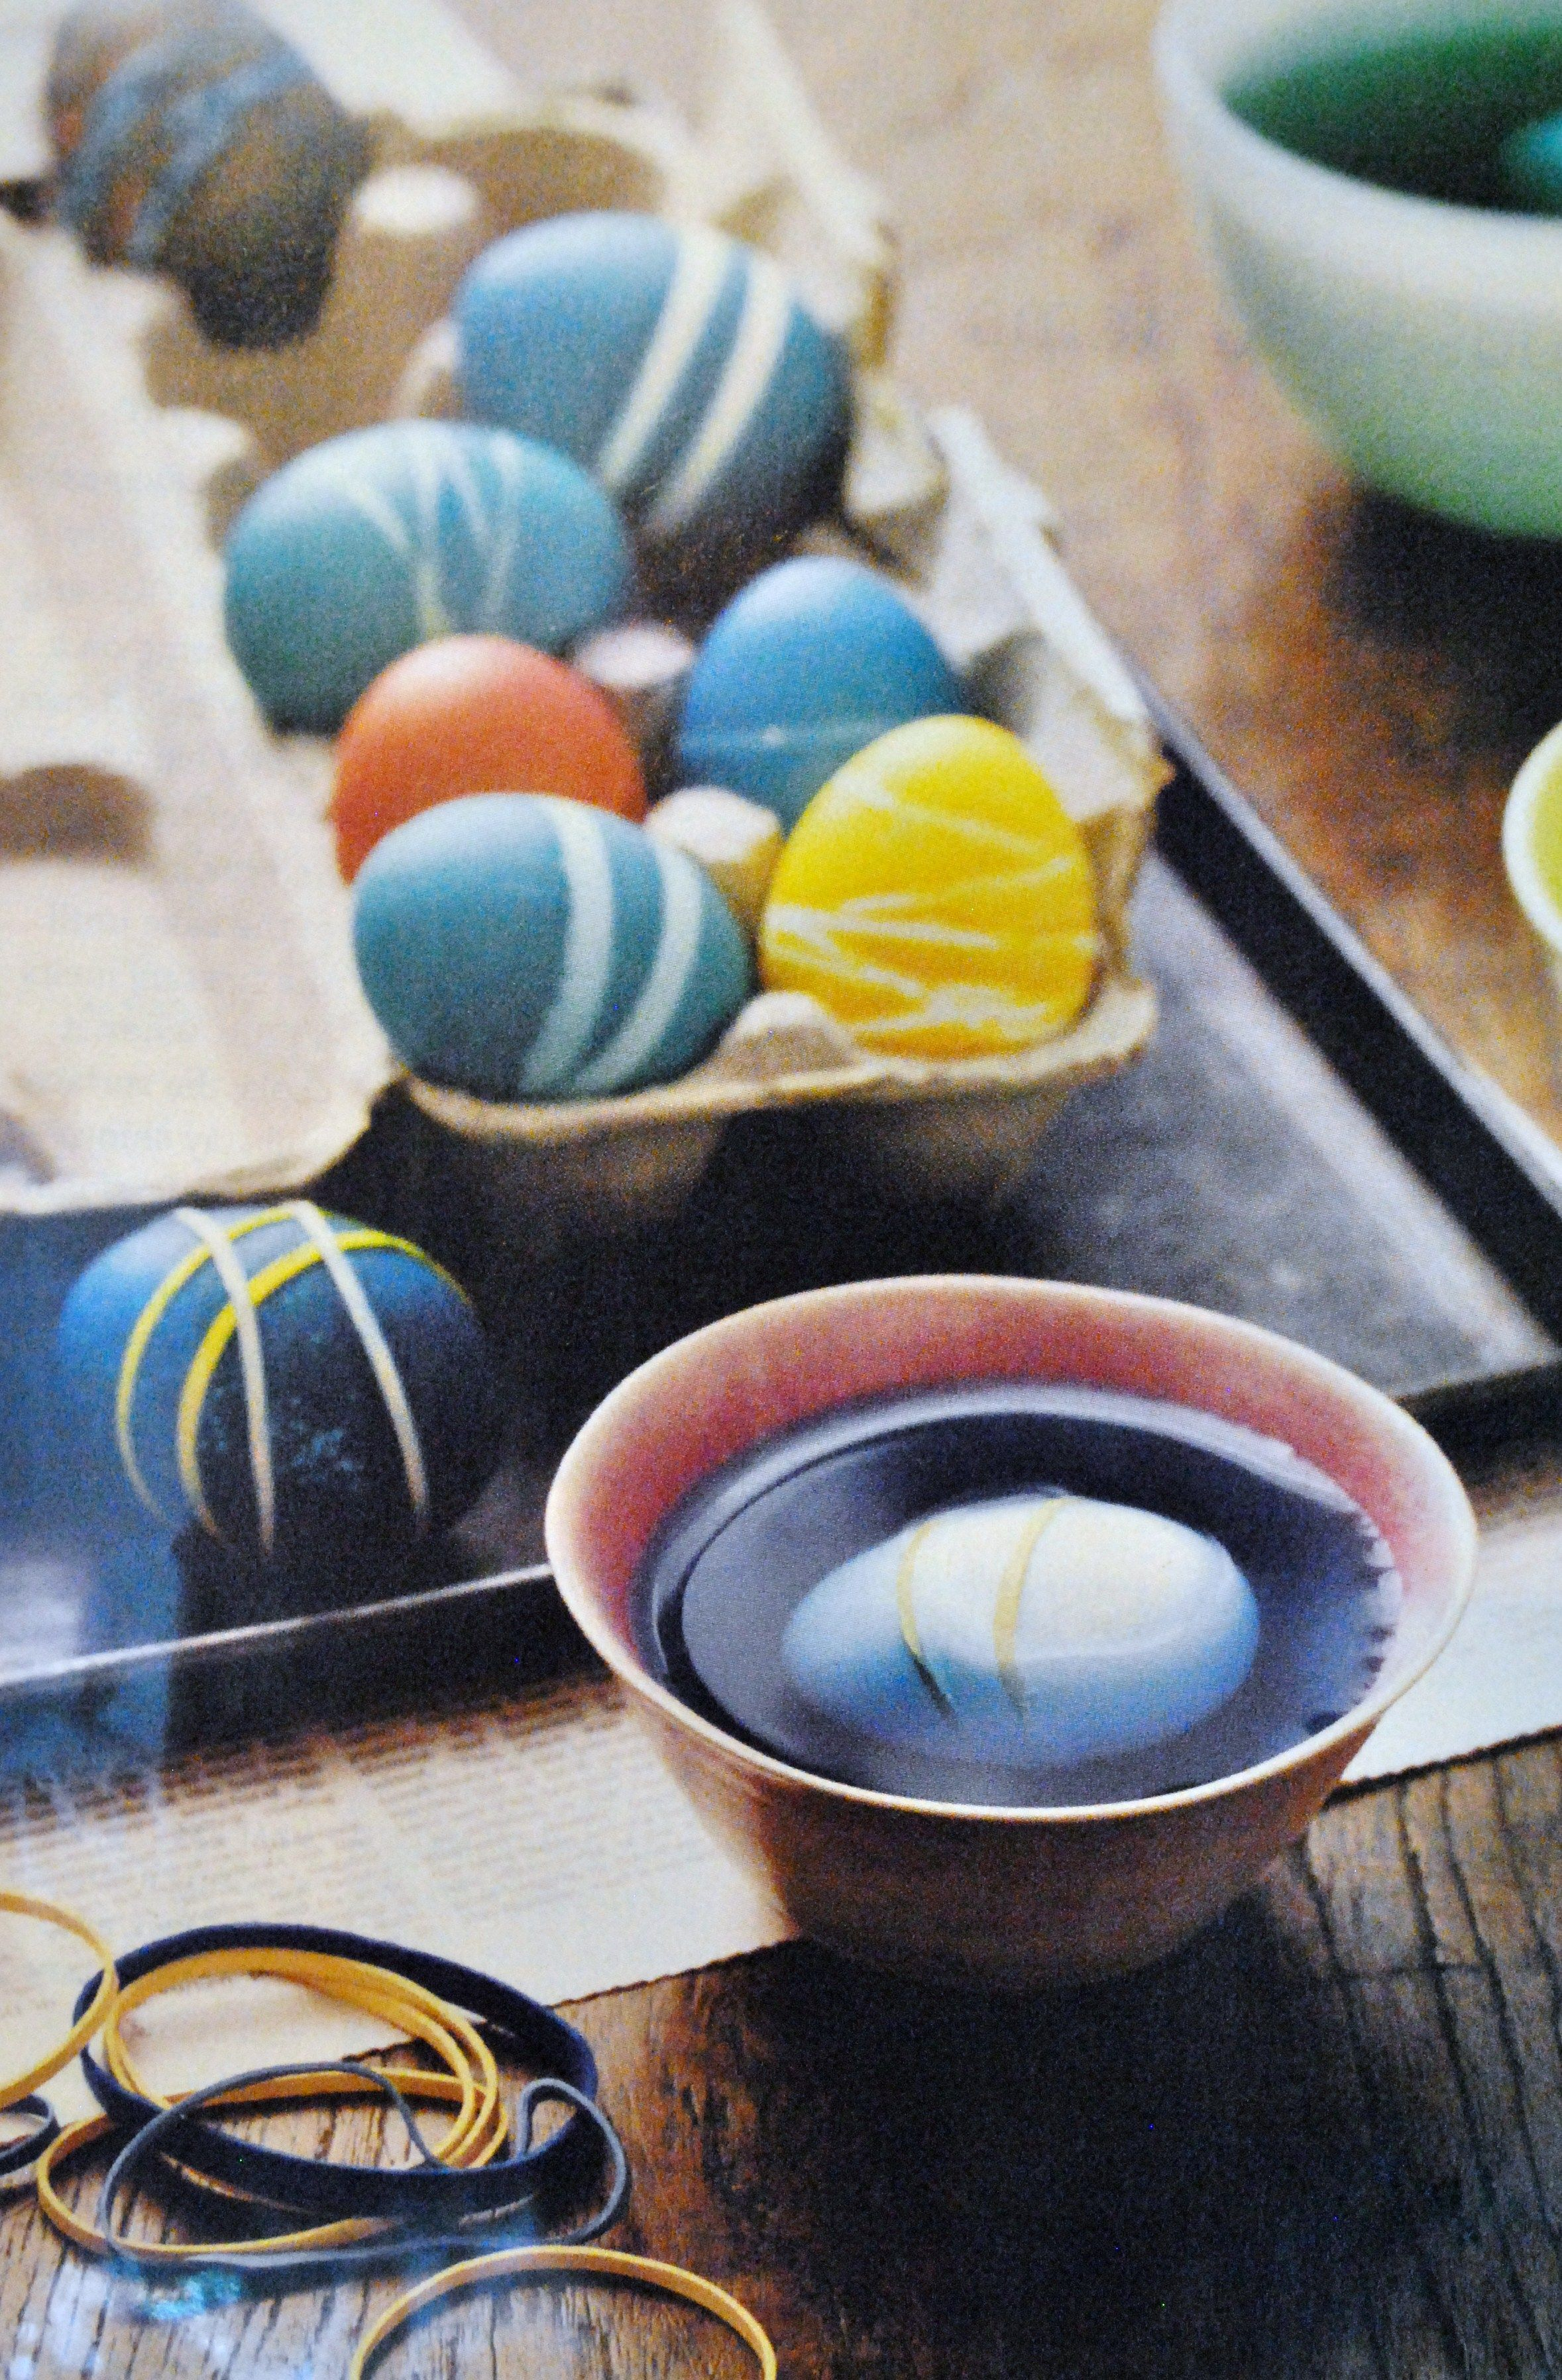 Easter Eggs - use rubber bands to create fun stripes on your eggs! (From Real Simple)